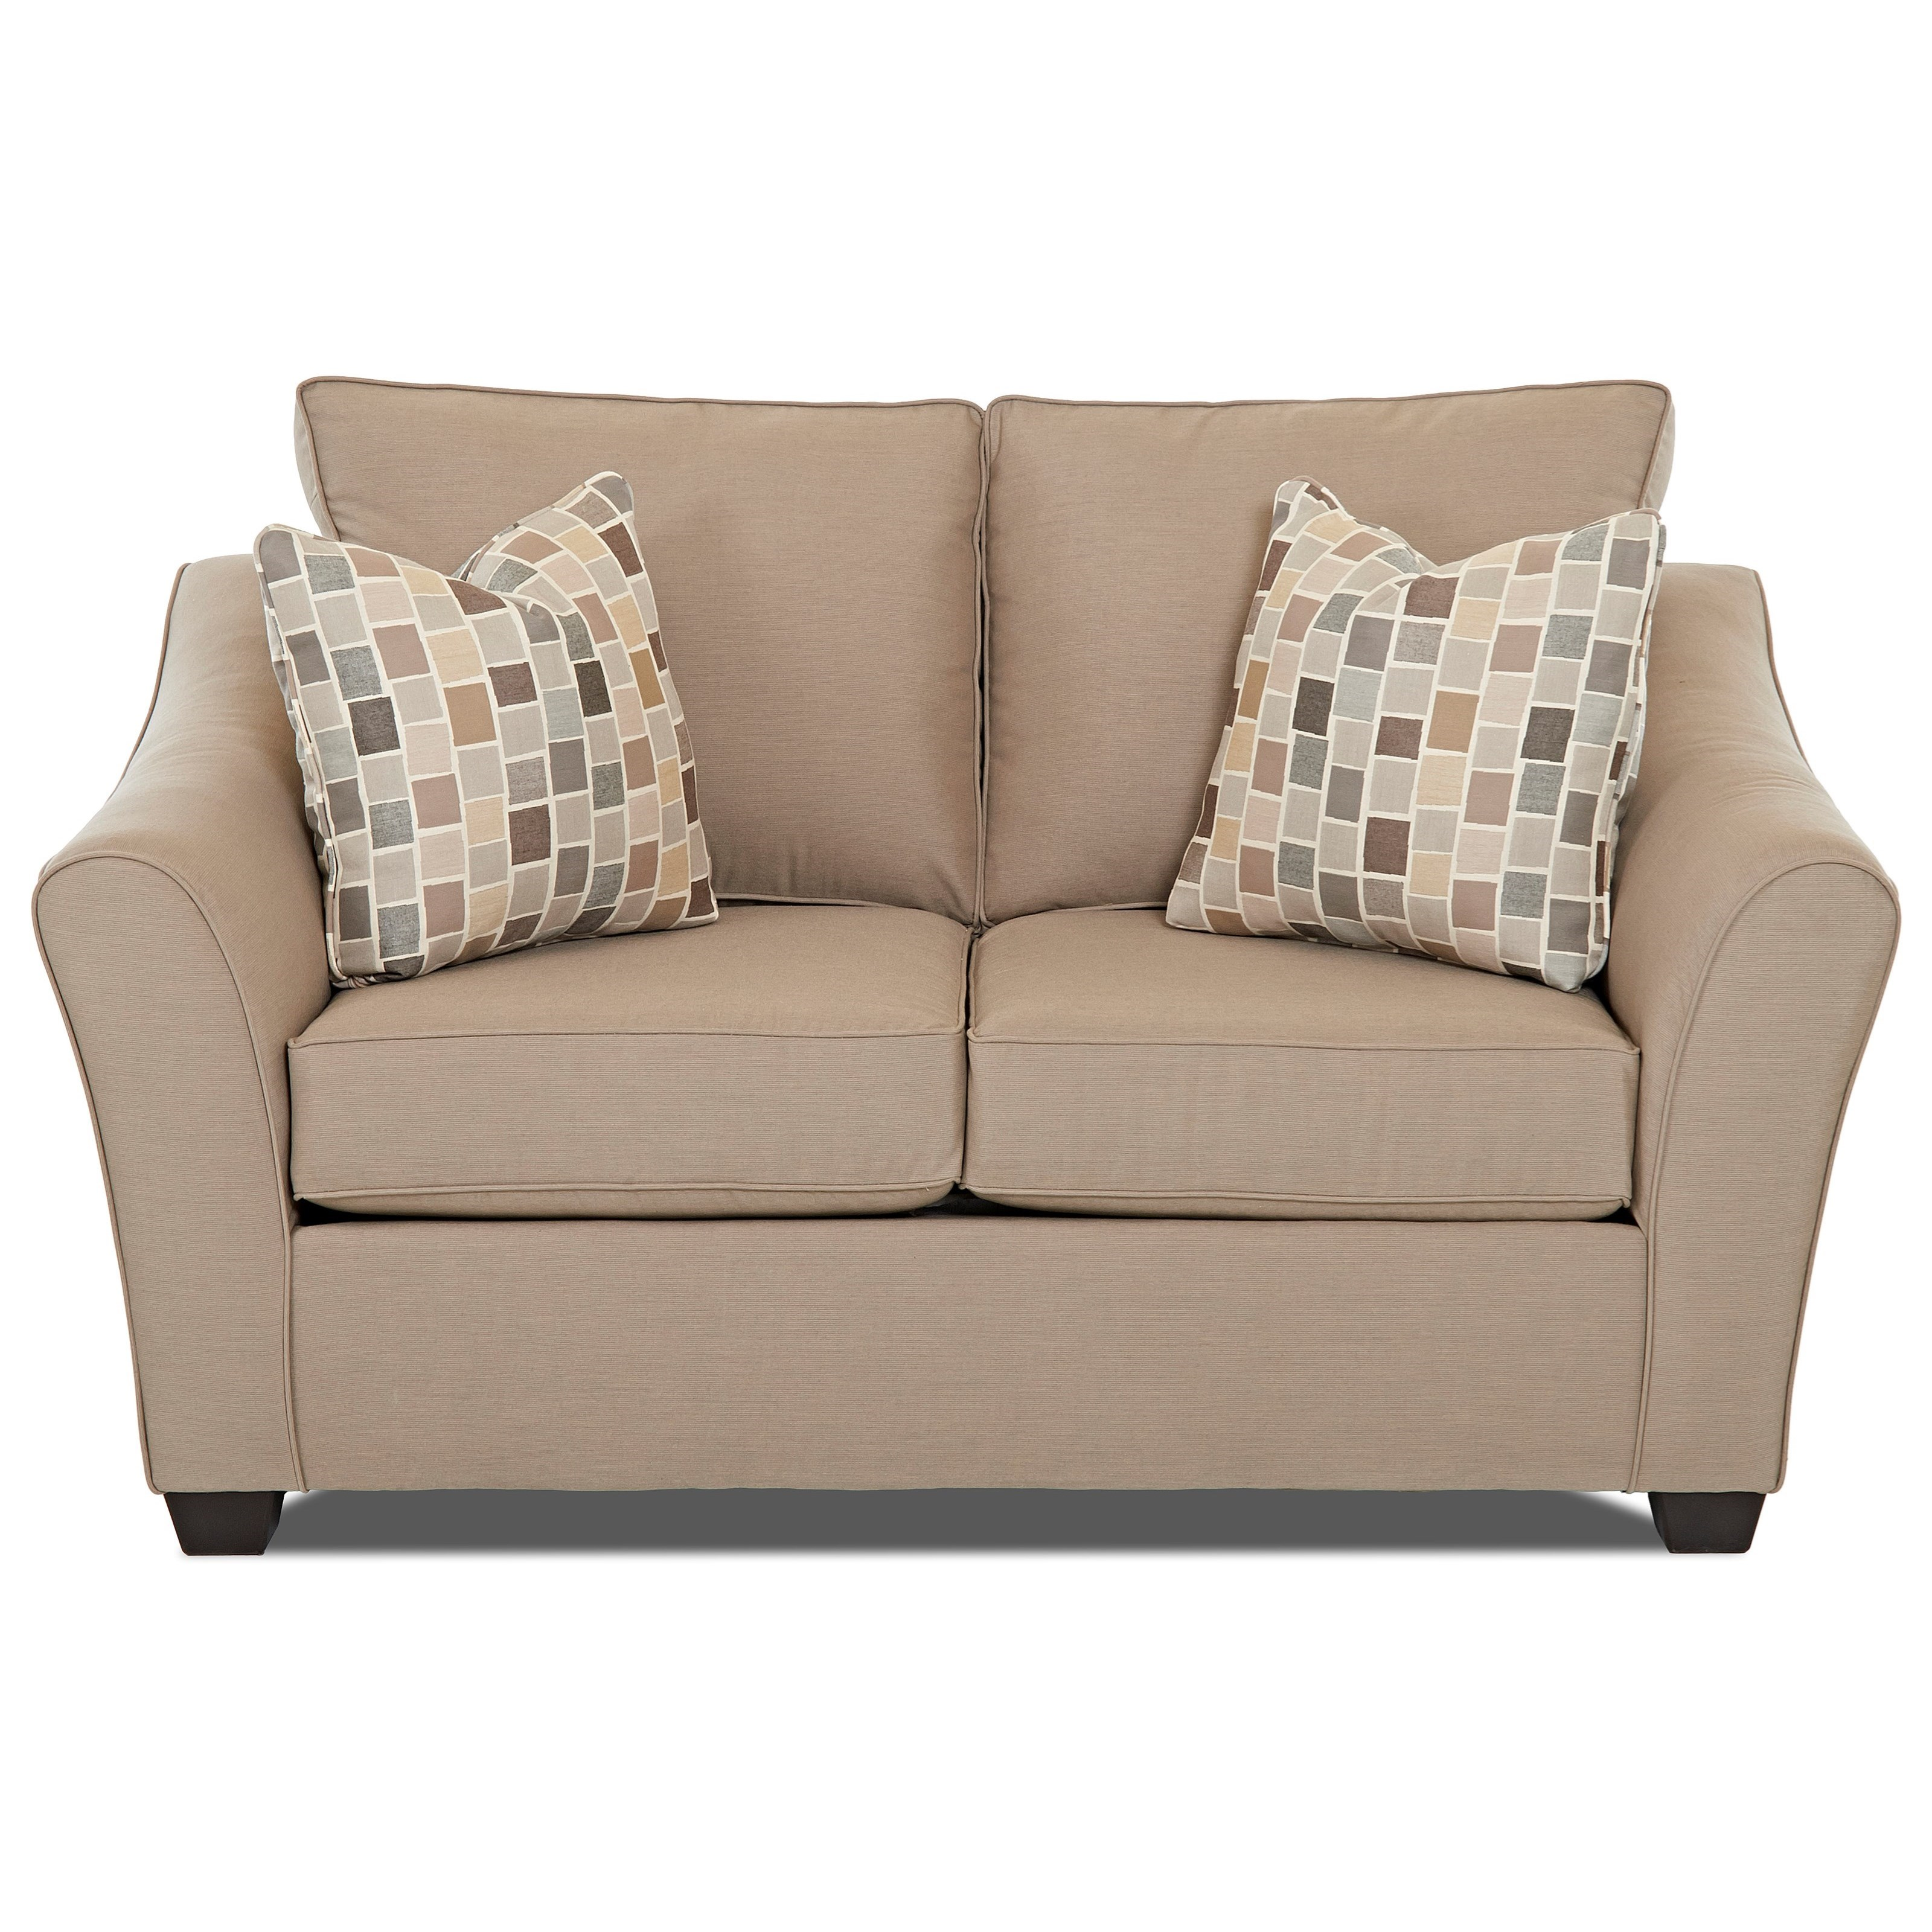 Linville Loveseat by Klaussner at Lagniappe Home Store